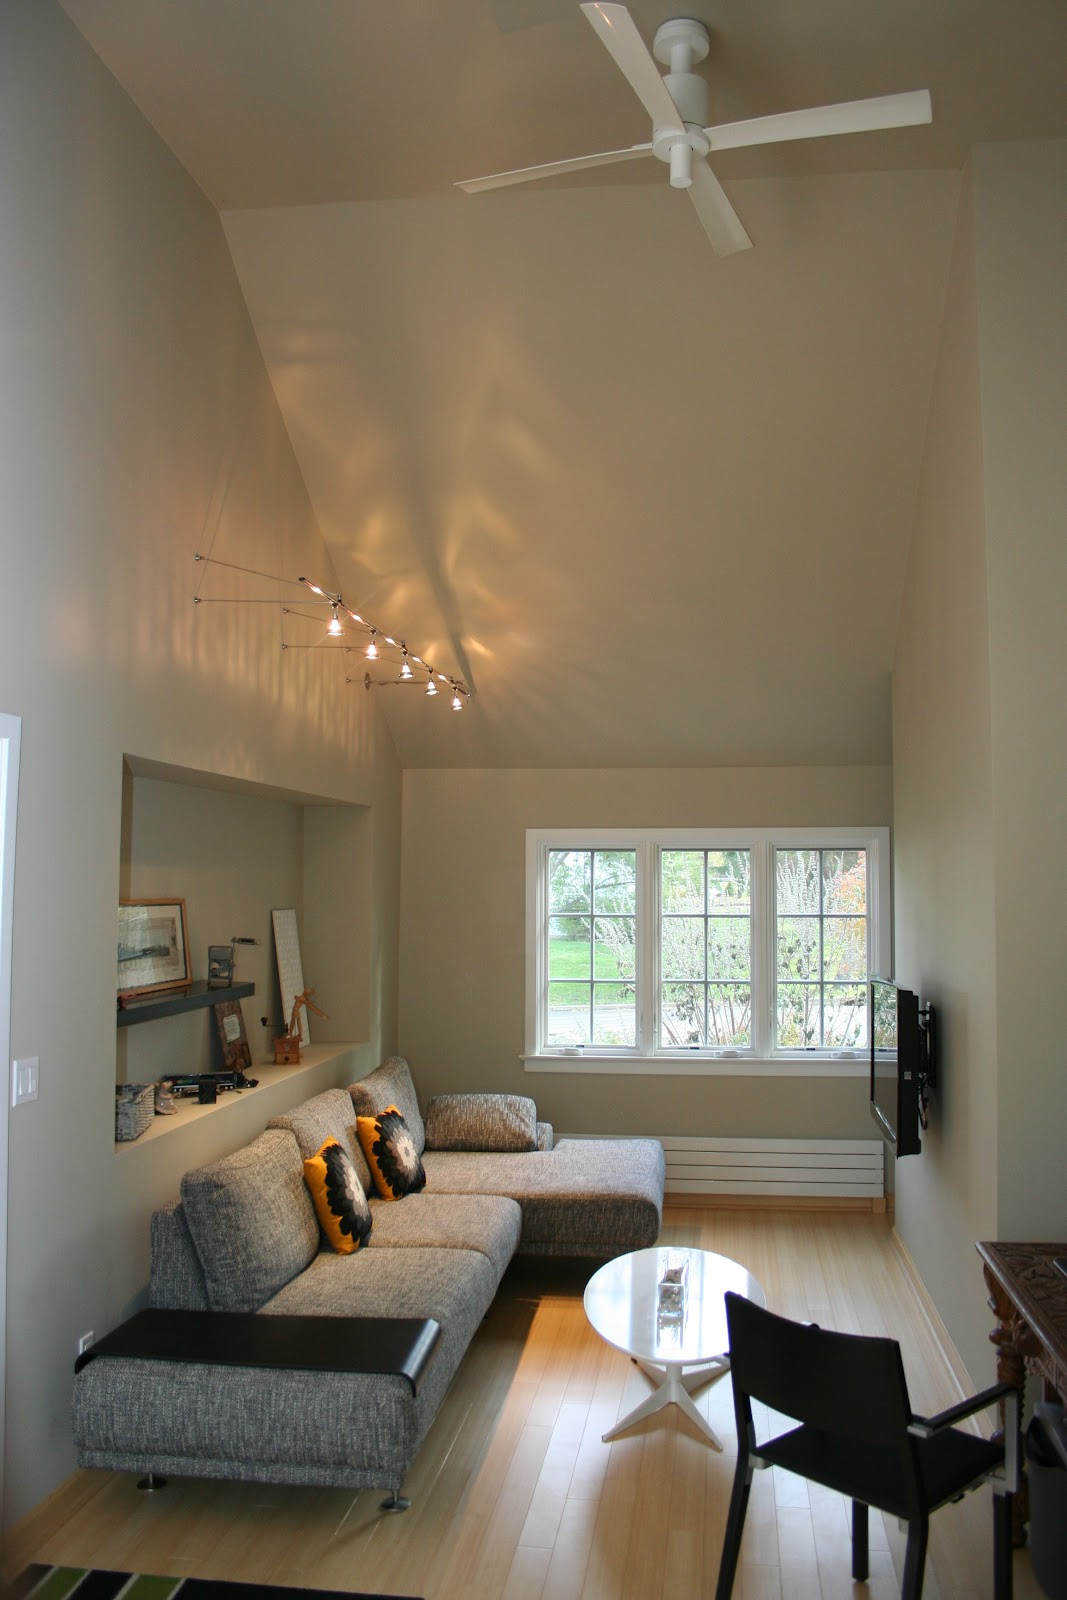 Living Room Lights String Ideas: A&E Construction's Blog: The Design Is In The Details